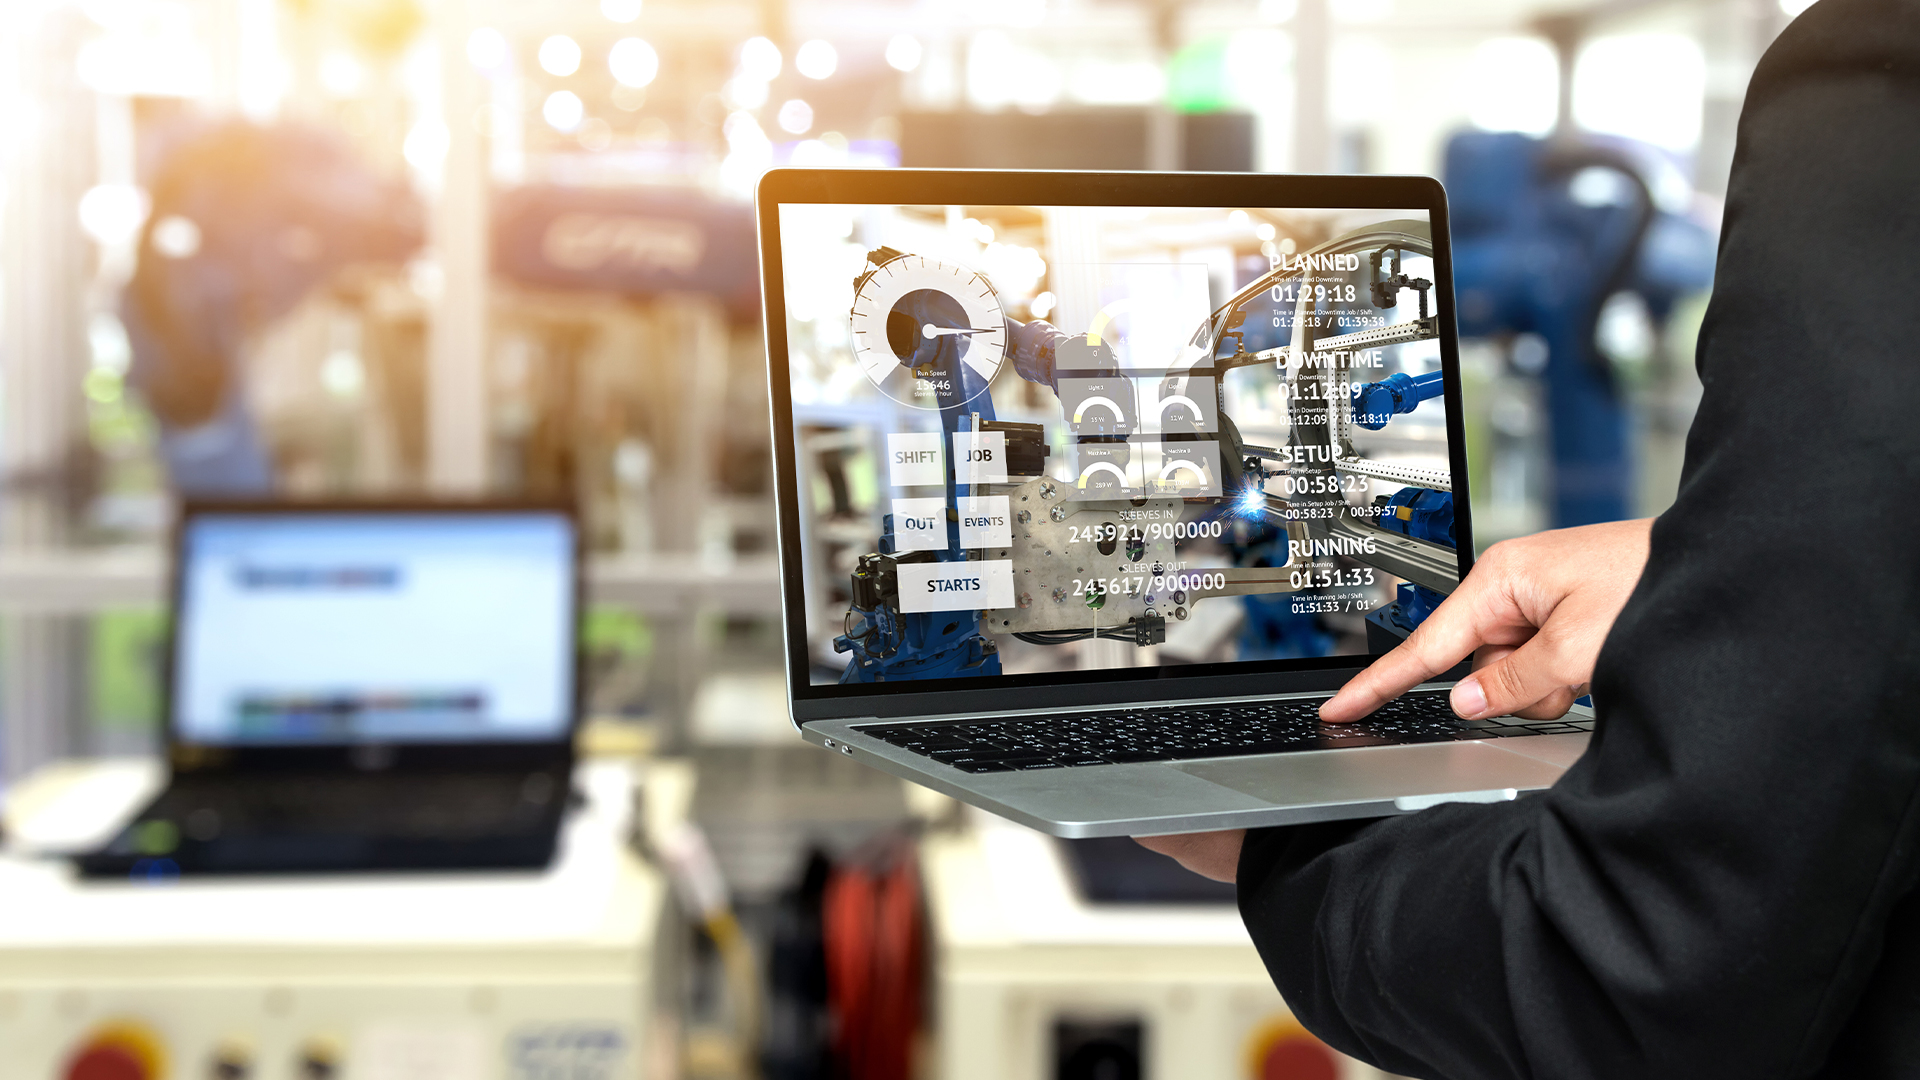 Four Industry 4.0 Trends That Will Impact Your Business